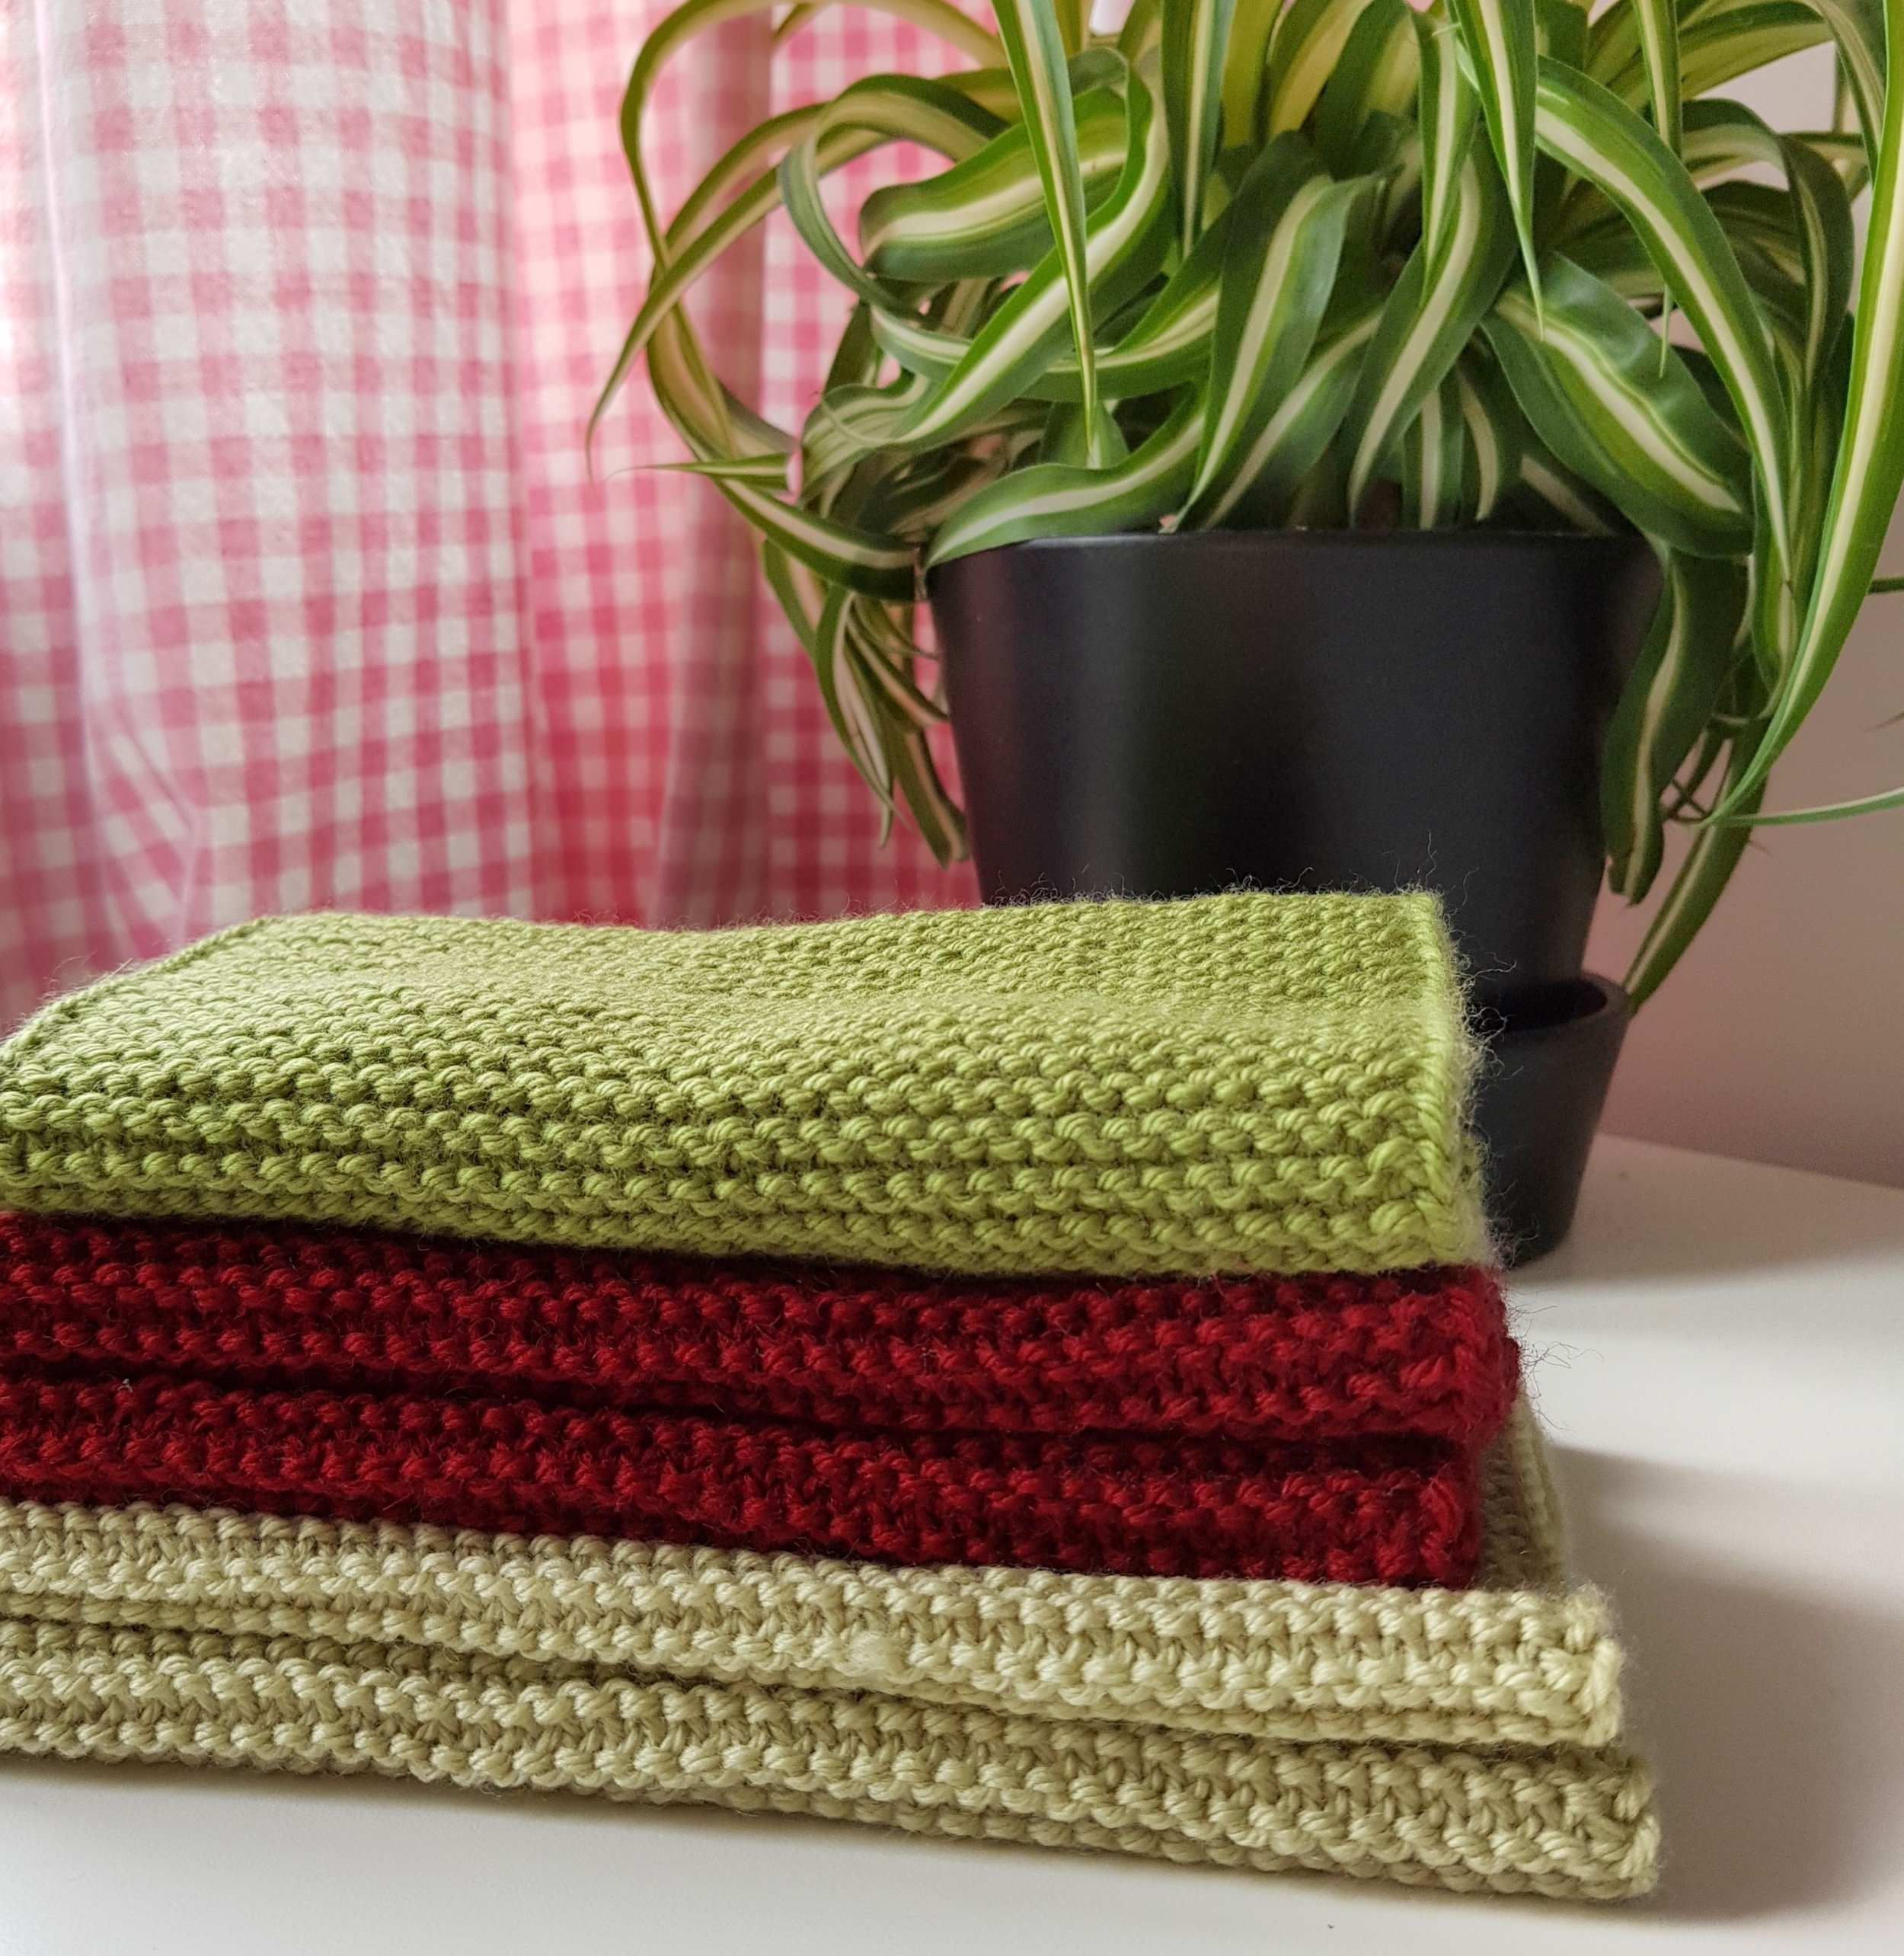 Here are some knits for my Knit Your First Accessories online knitting course.